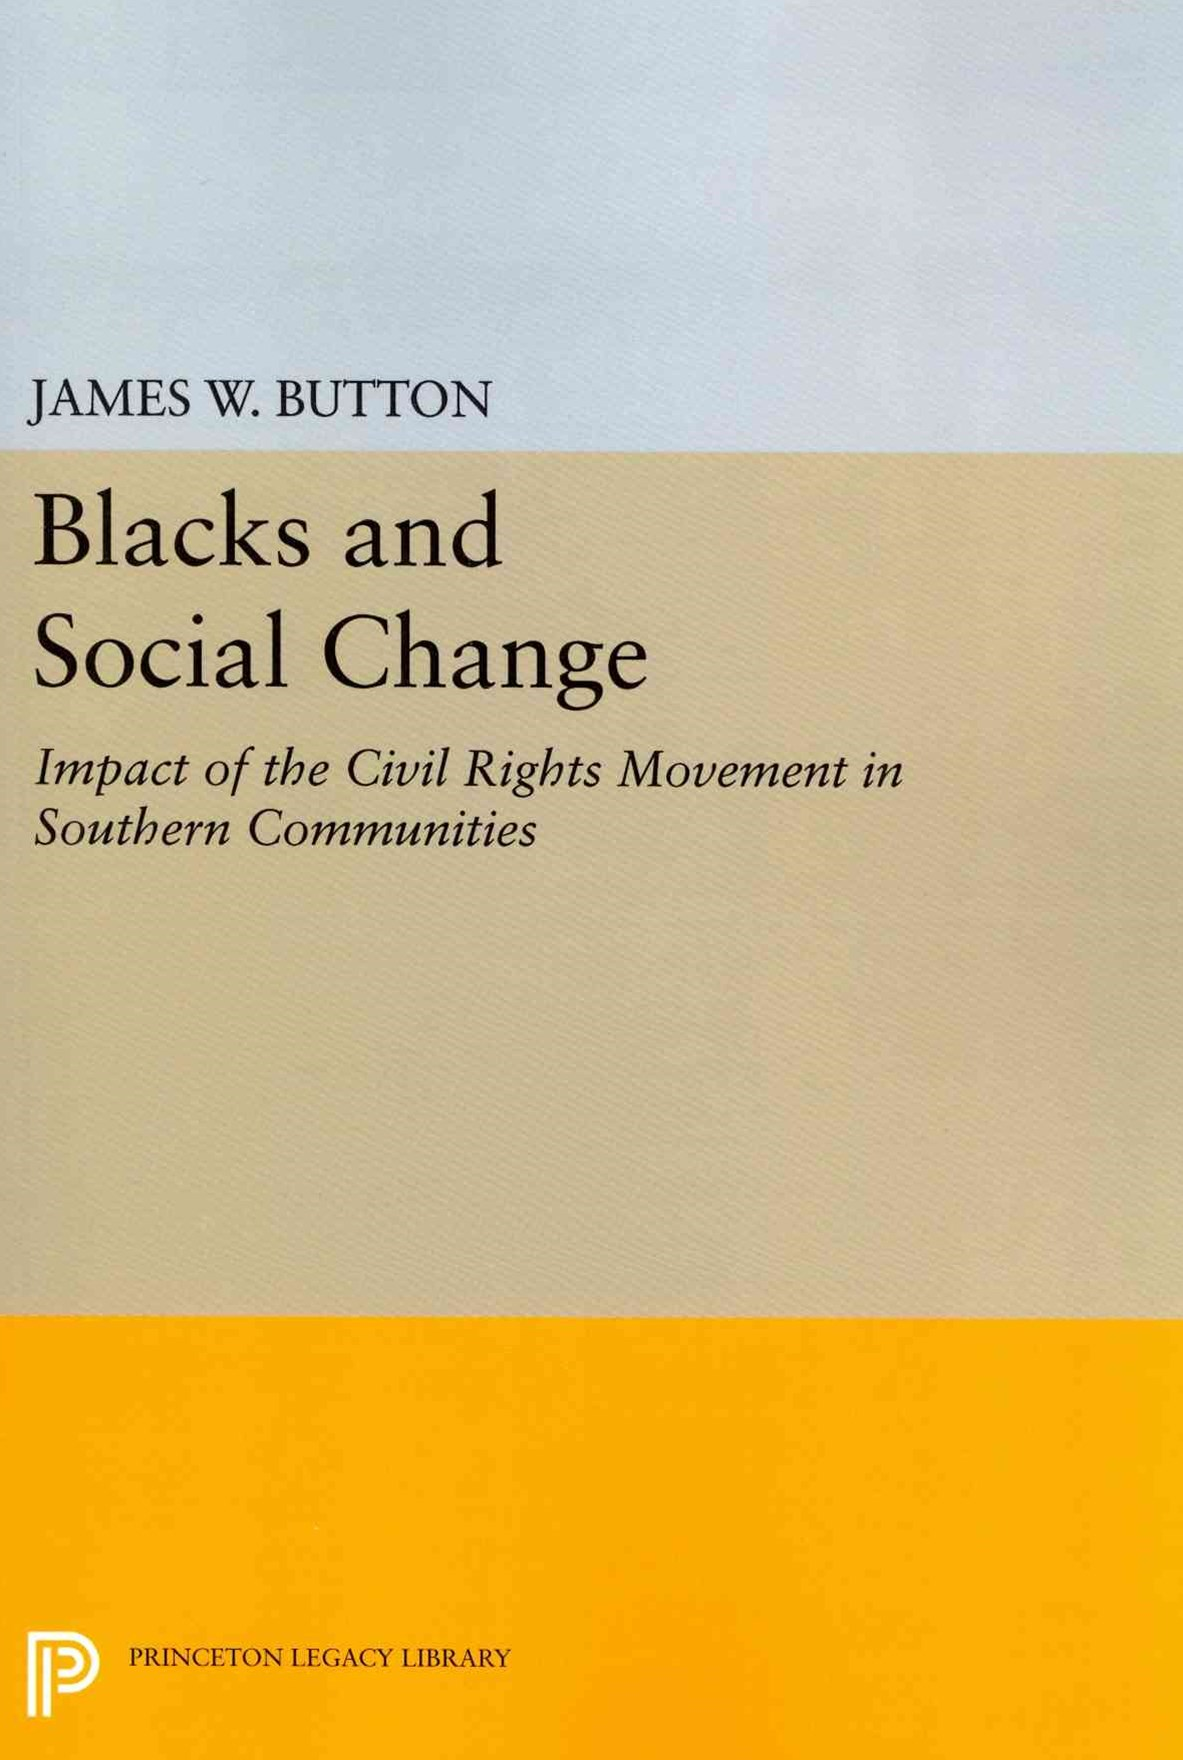 Blacks and Social Change